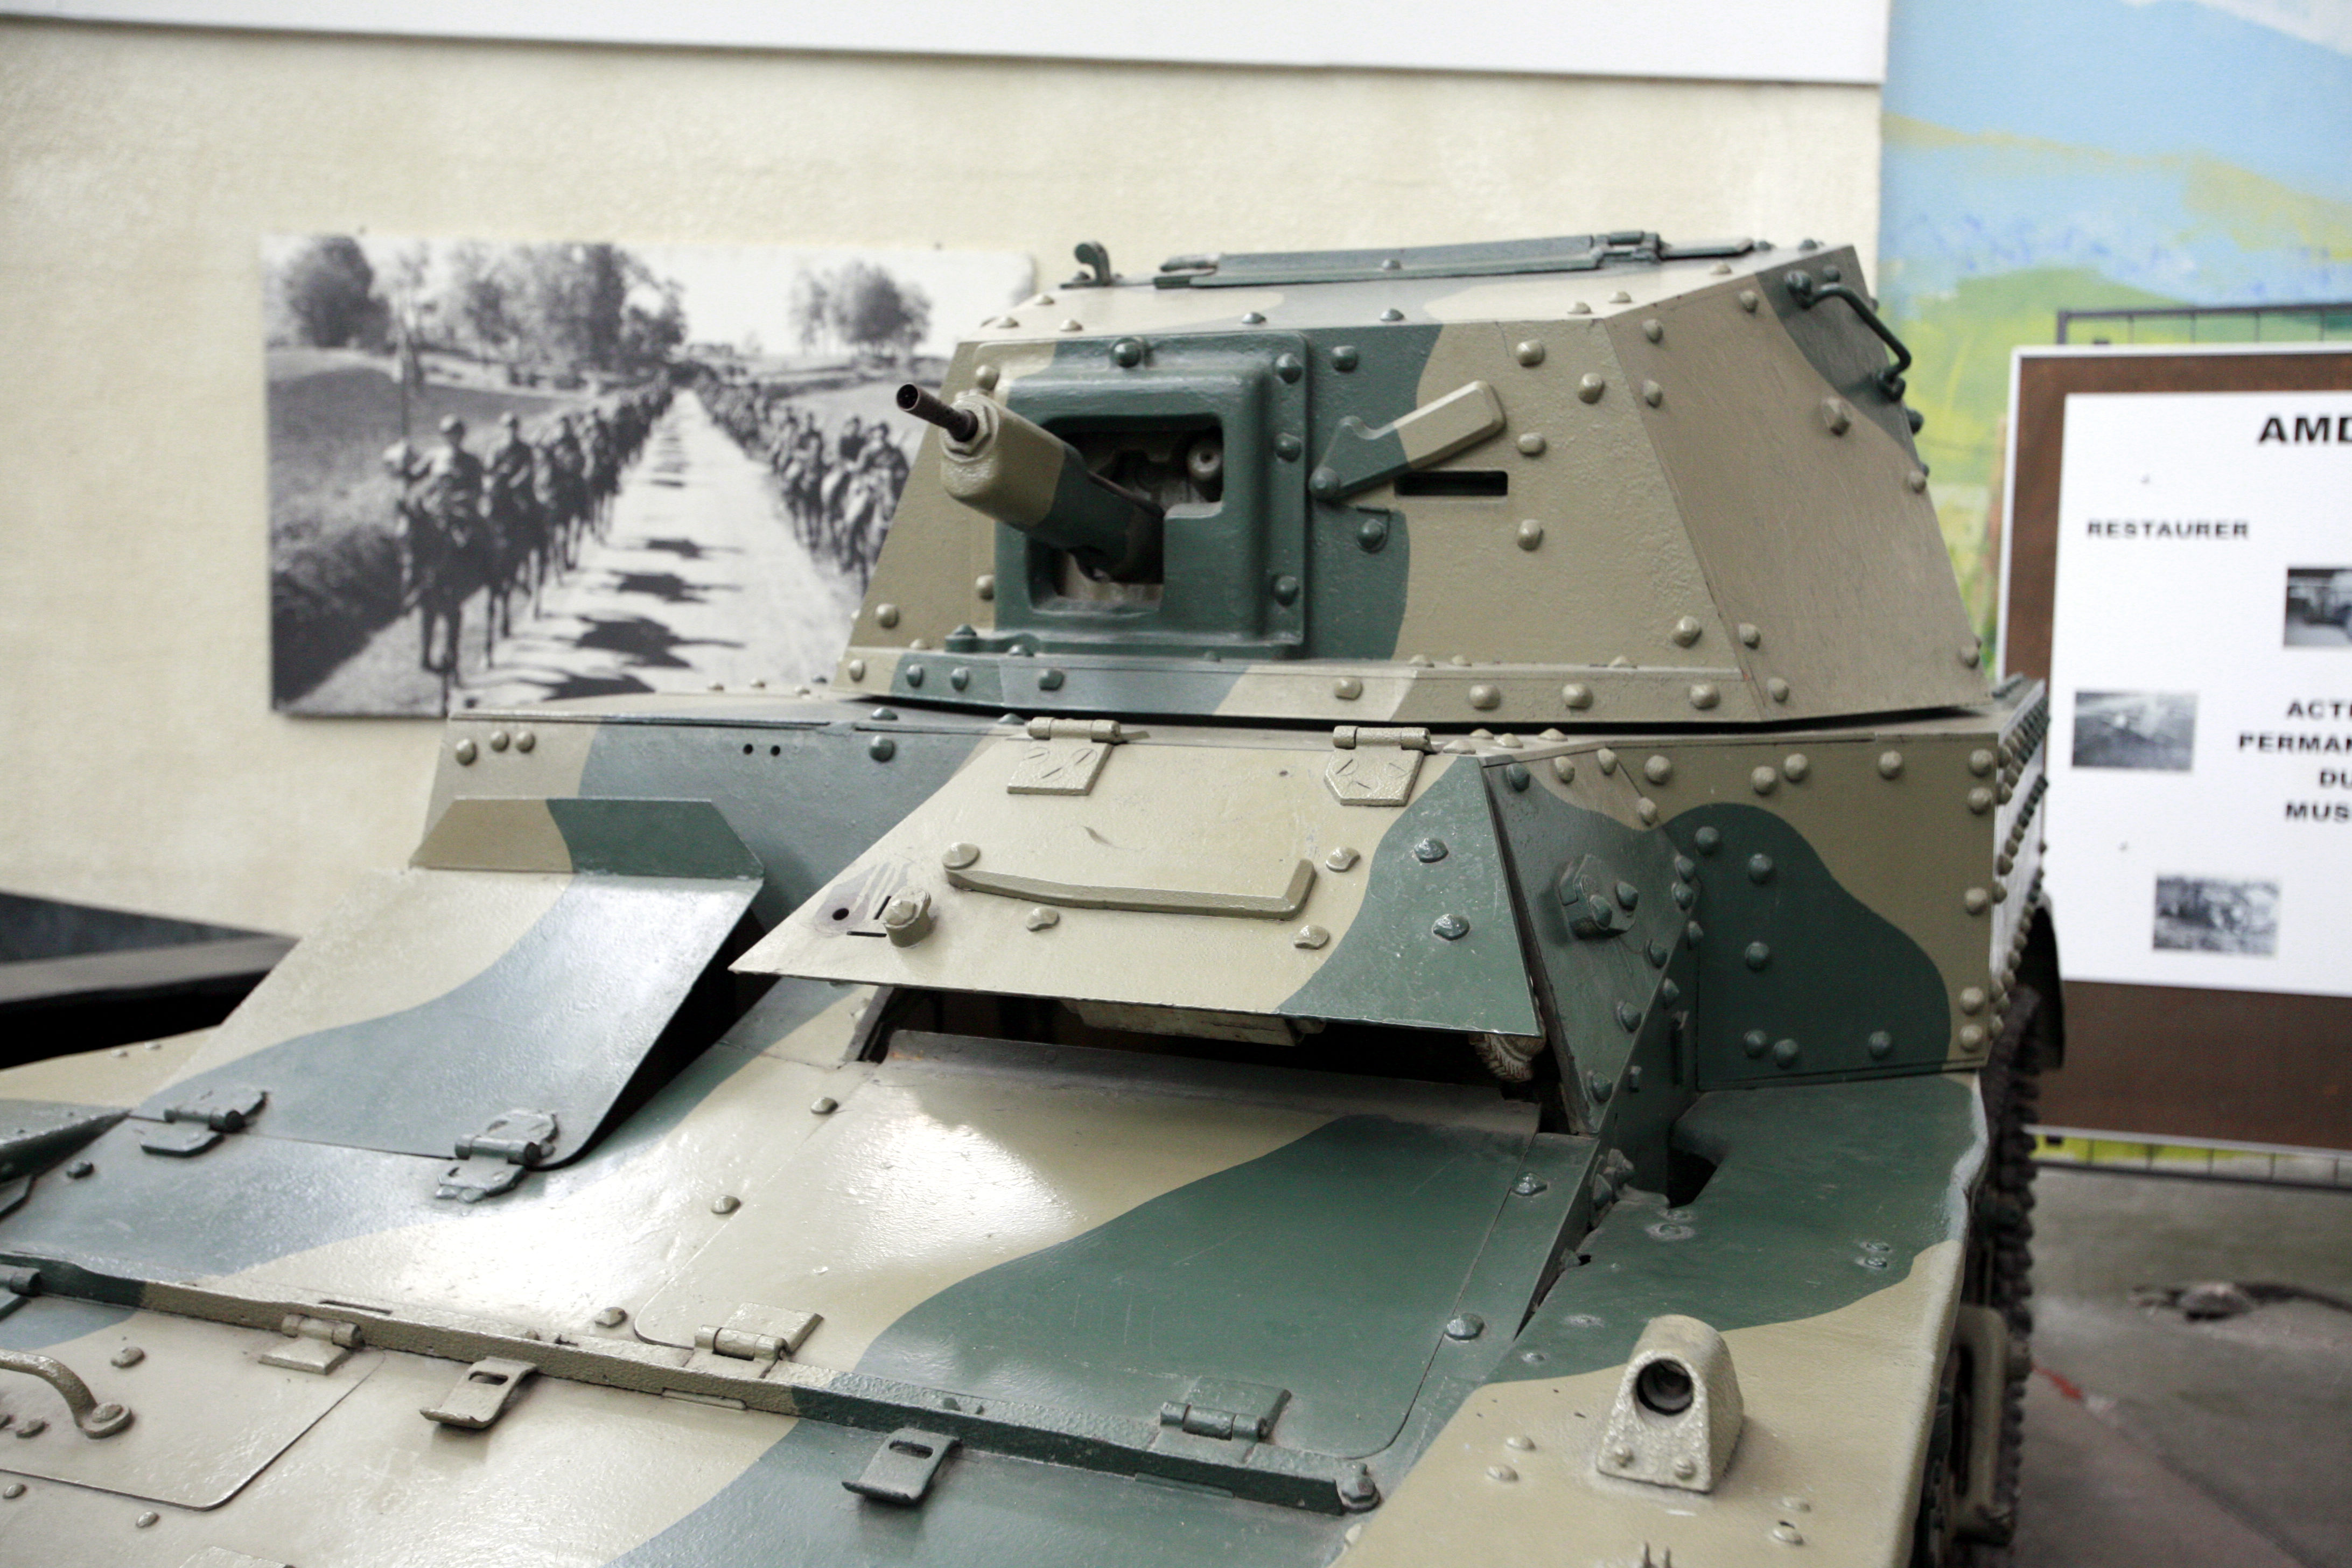 details of the turret